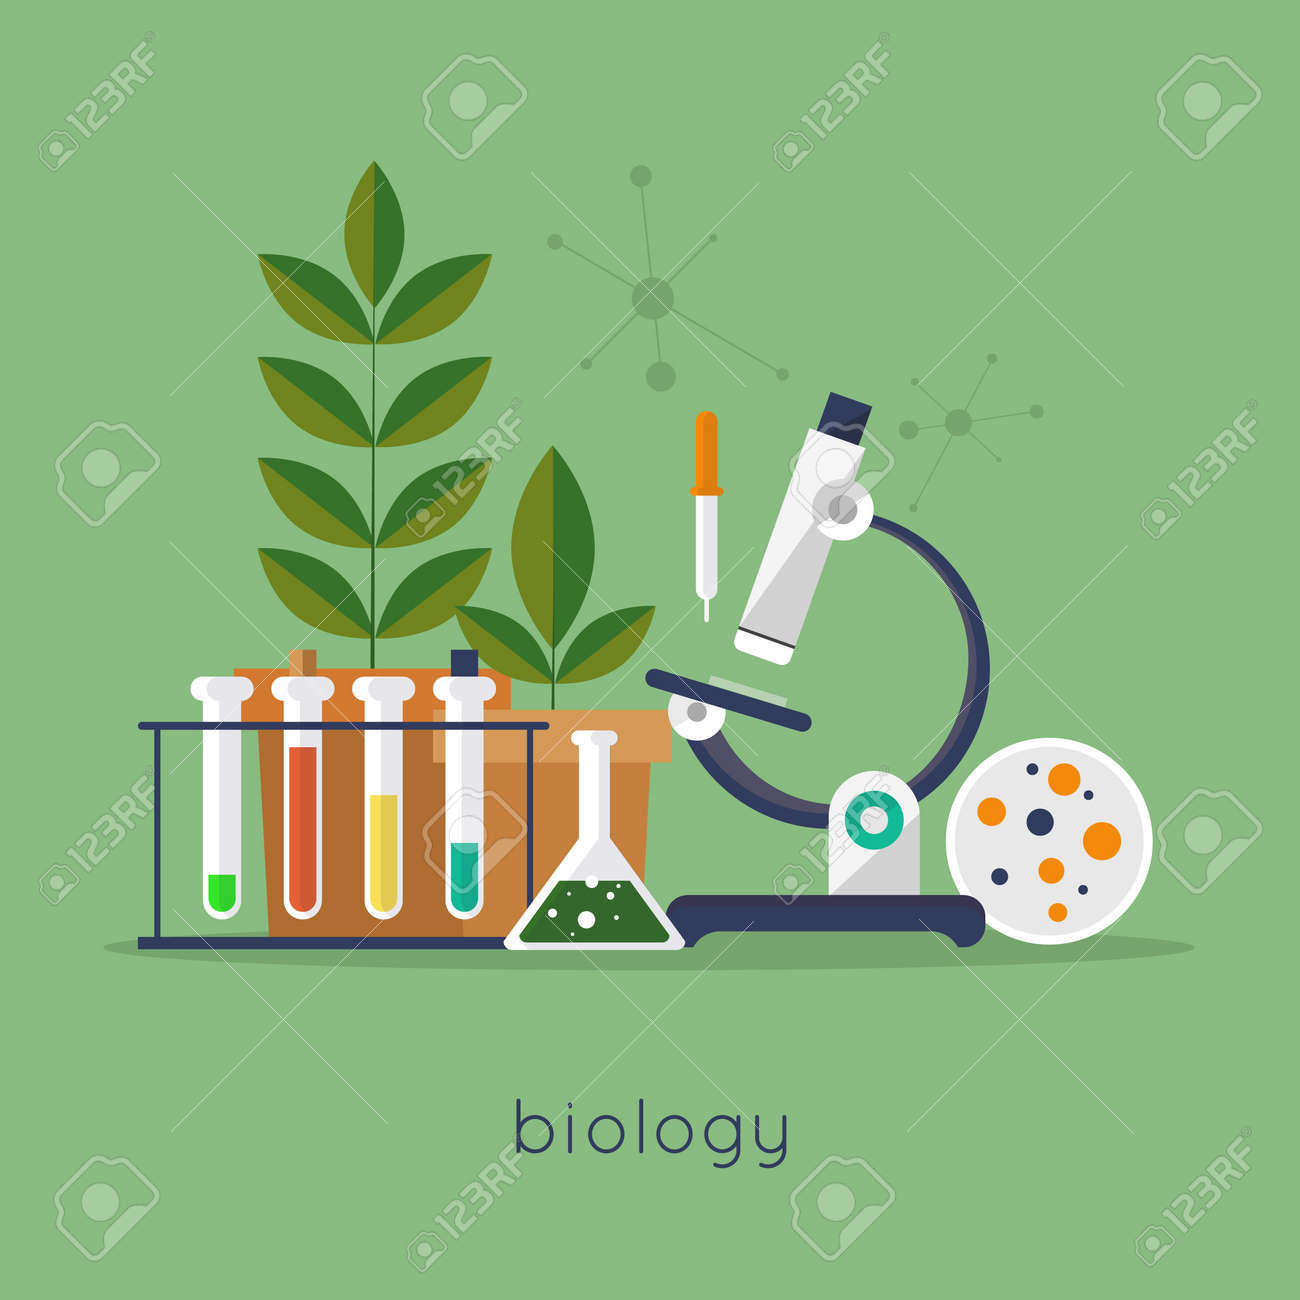 Biology laboratory workspace and science equipment concept. Flat design vector illustration. - 42289632